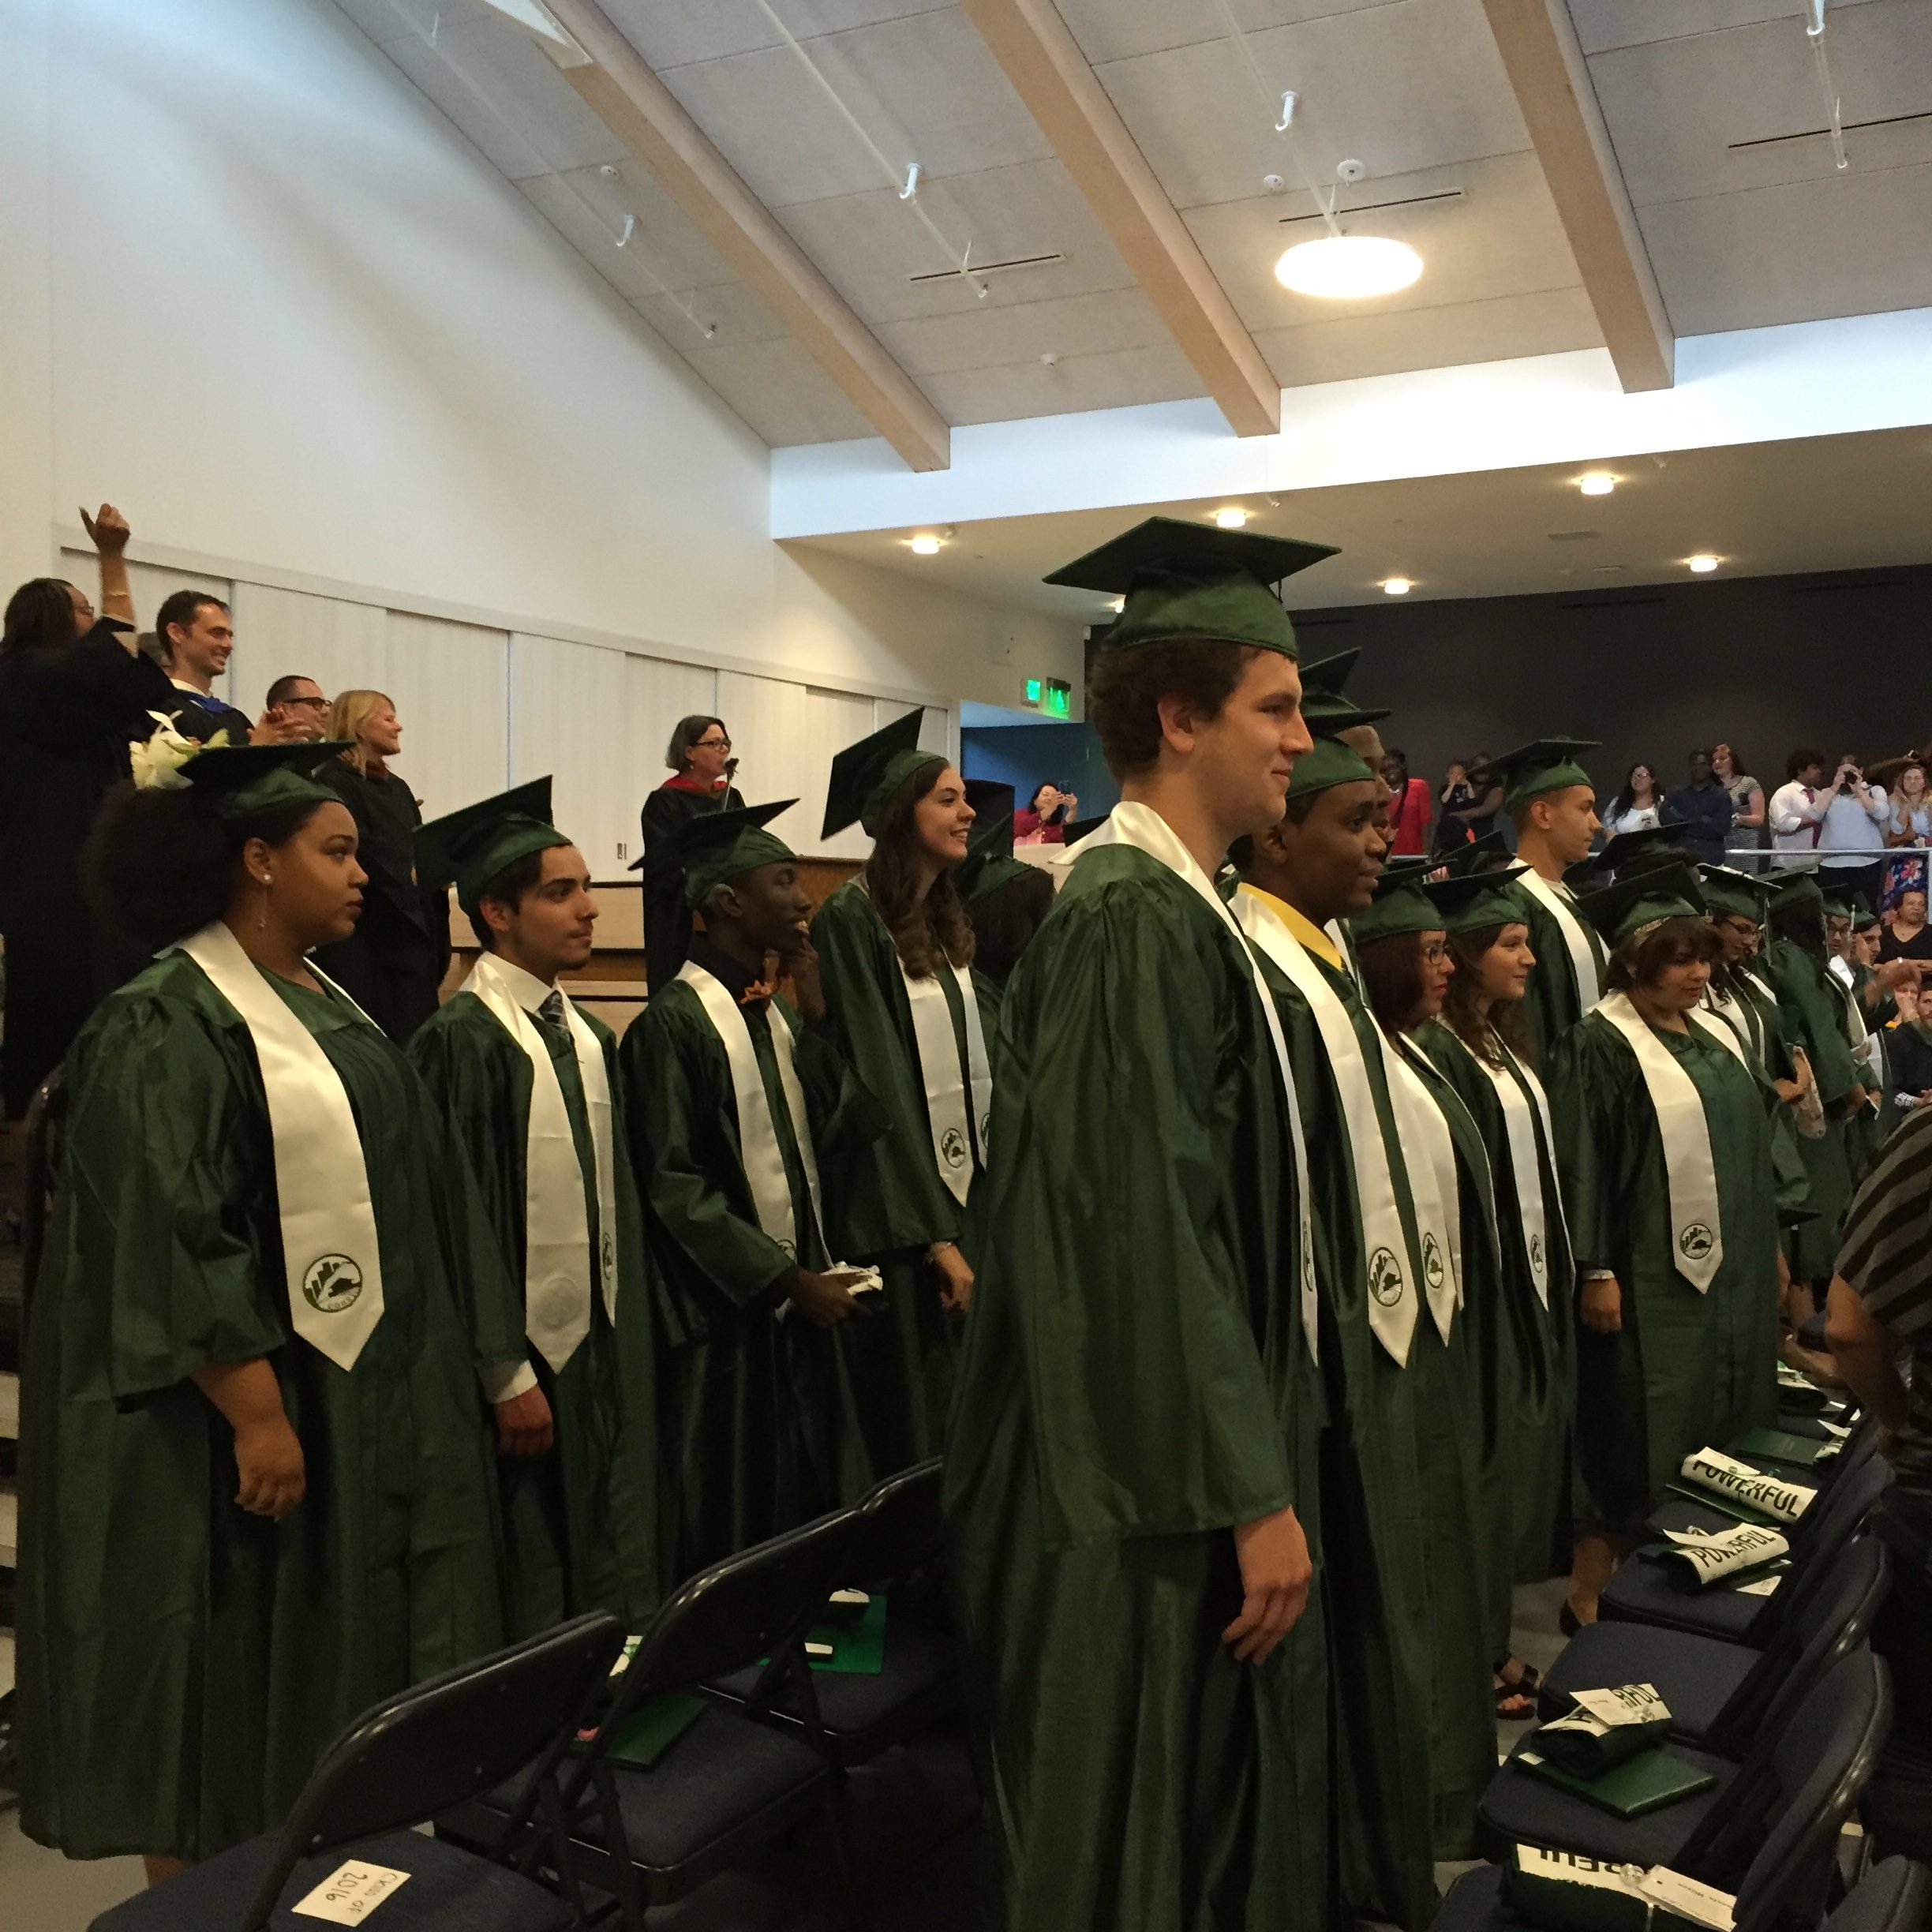 Students in caps and gowns at Common Ground's 2016 graduation.